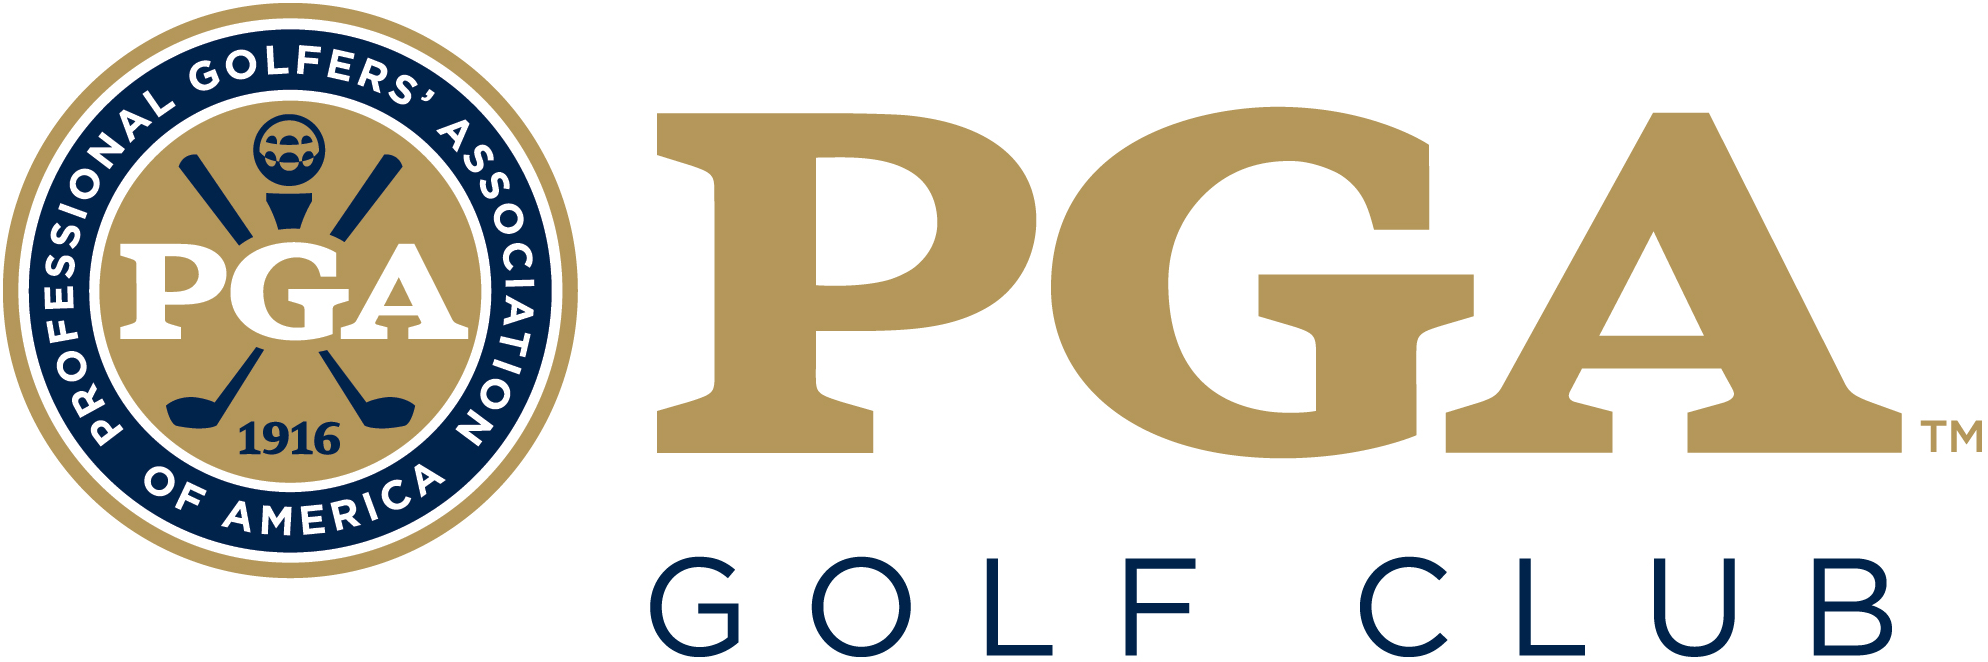 Women's Golf Day - PGA | Center for Golf Learning & Performance